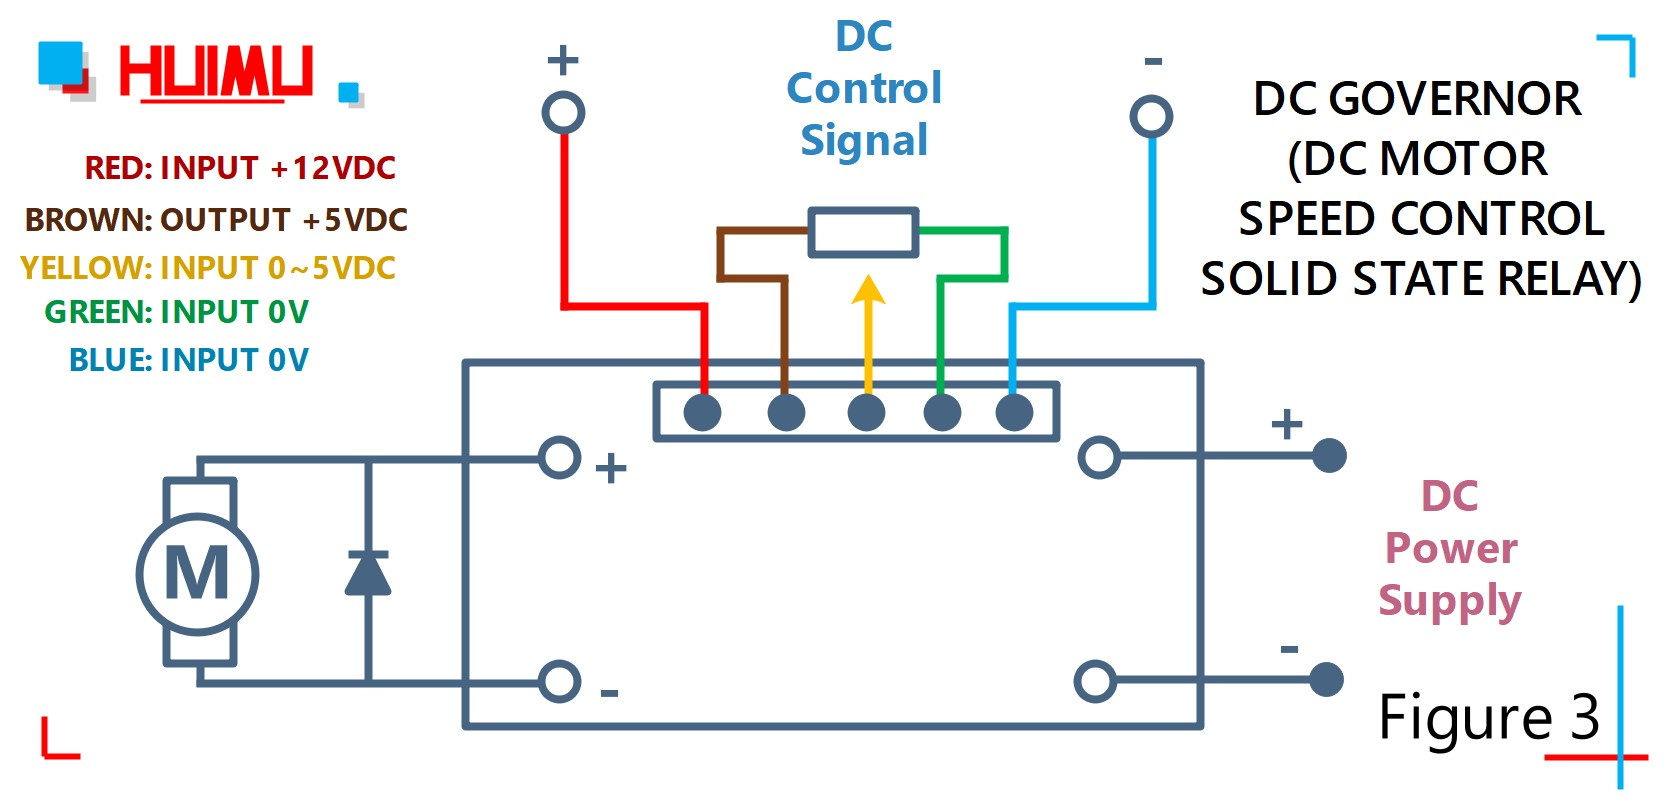 Motor sd or direction controller solid state relay wiring ... on